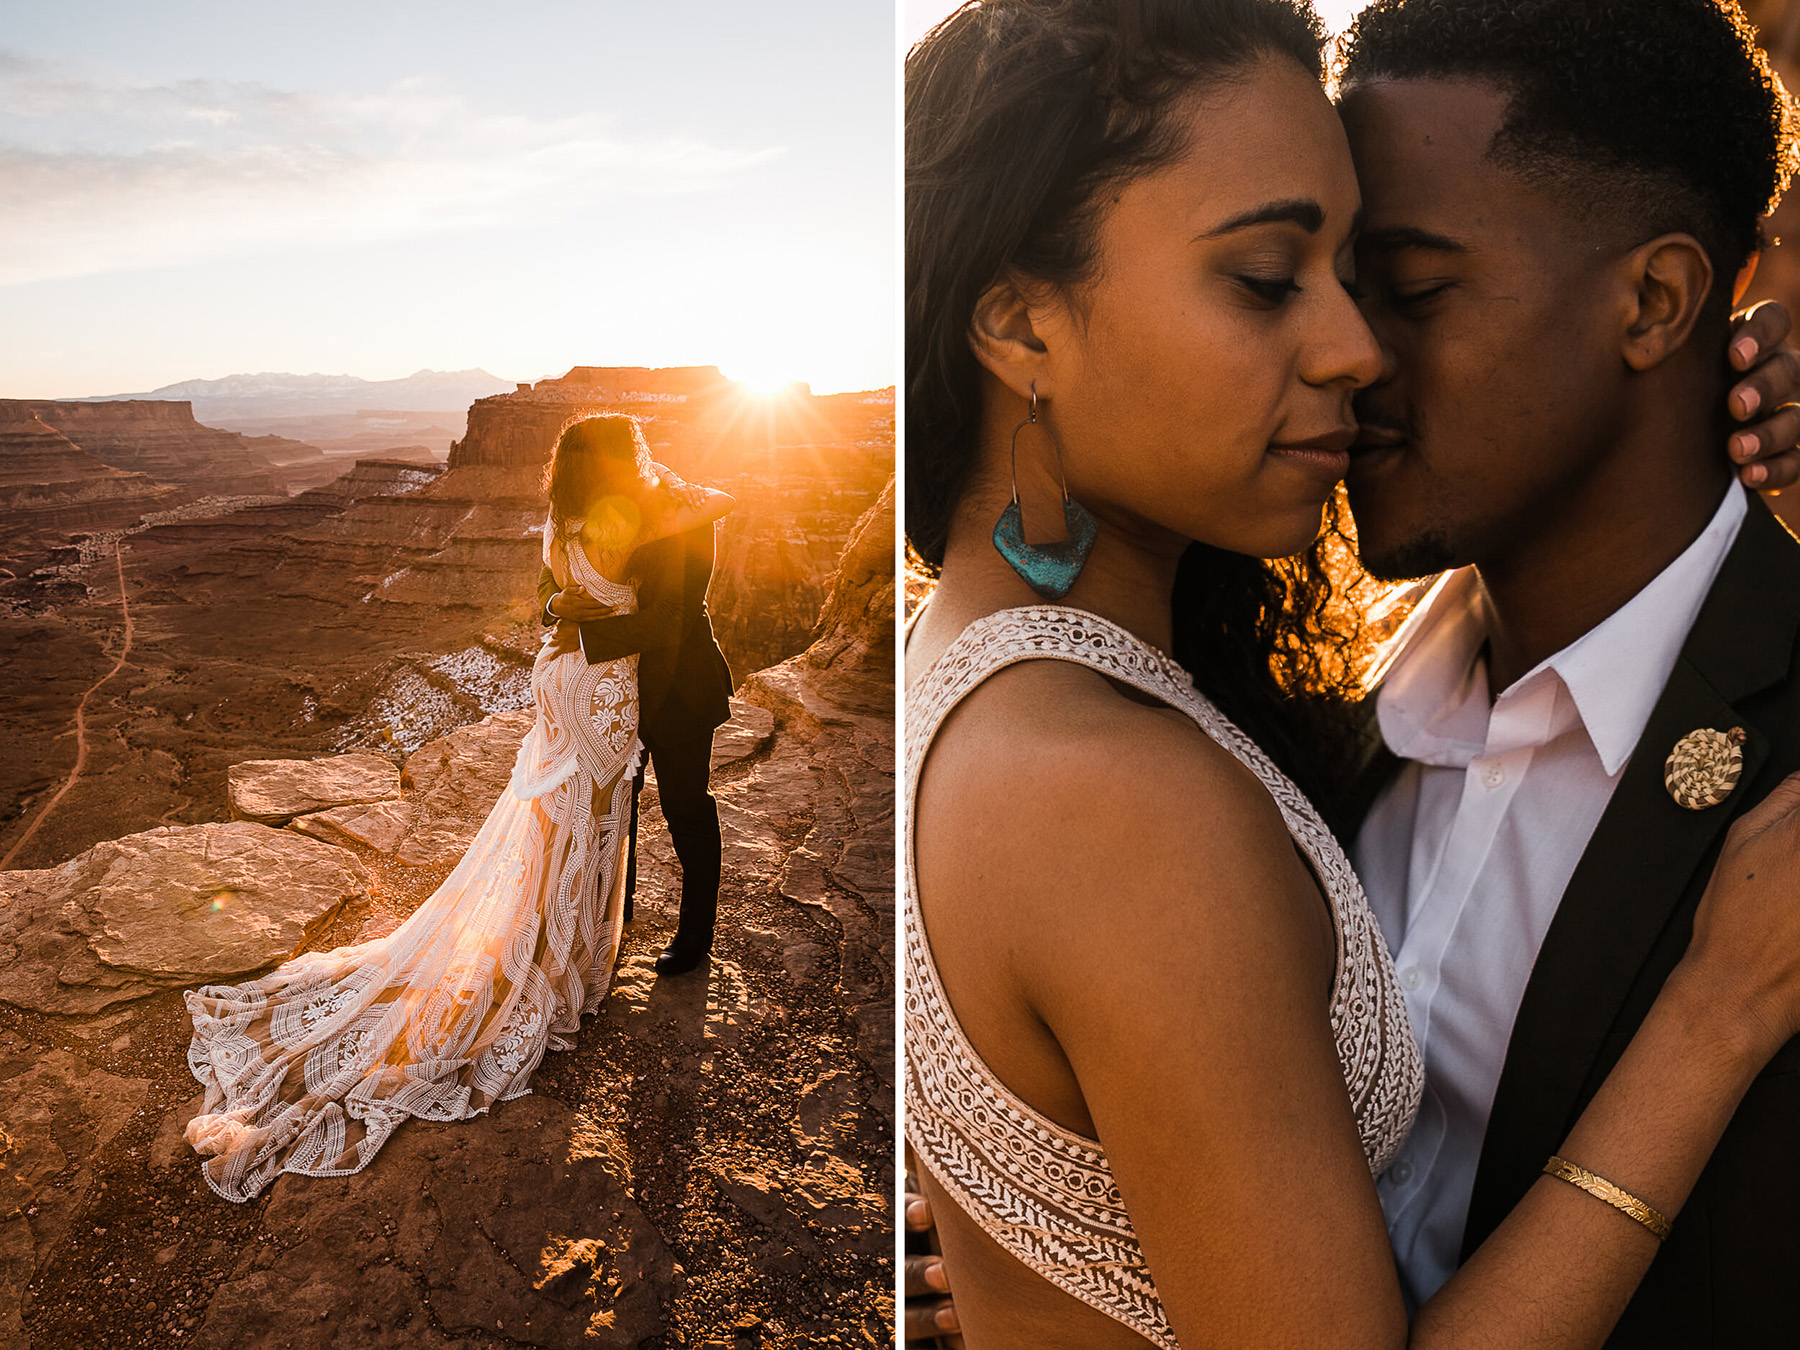 A Styled Moab Elopement Shoot Turns Into A Real Proposal